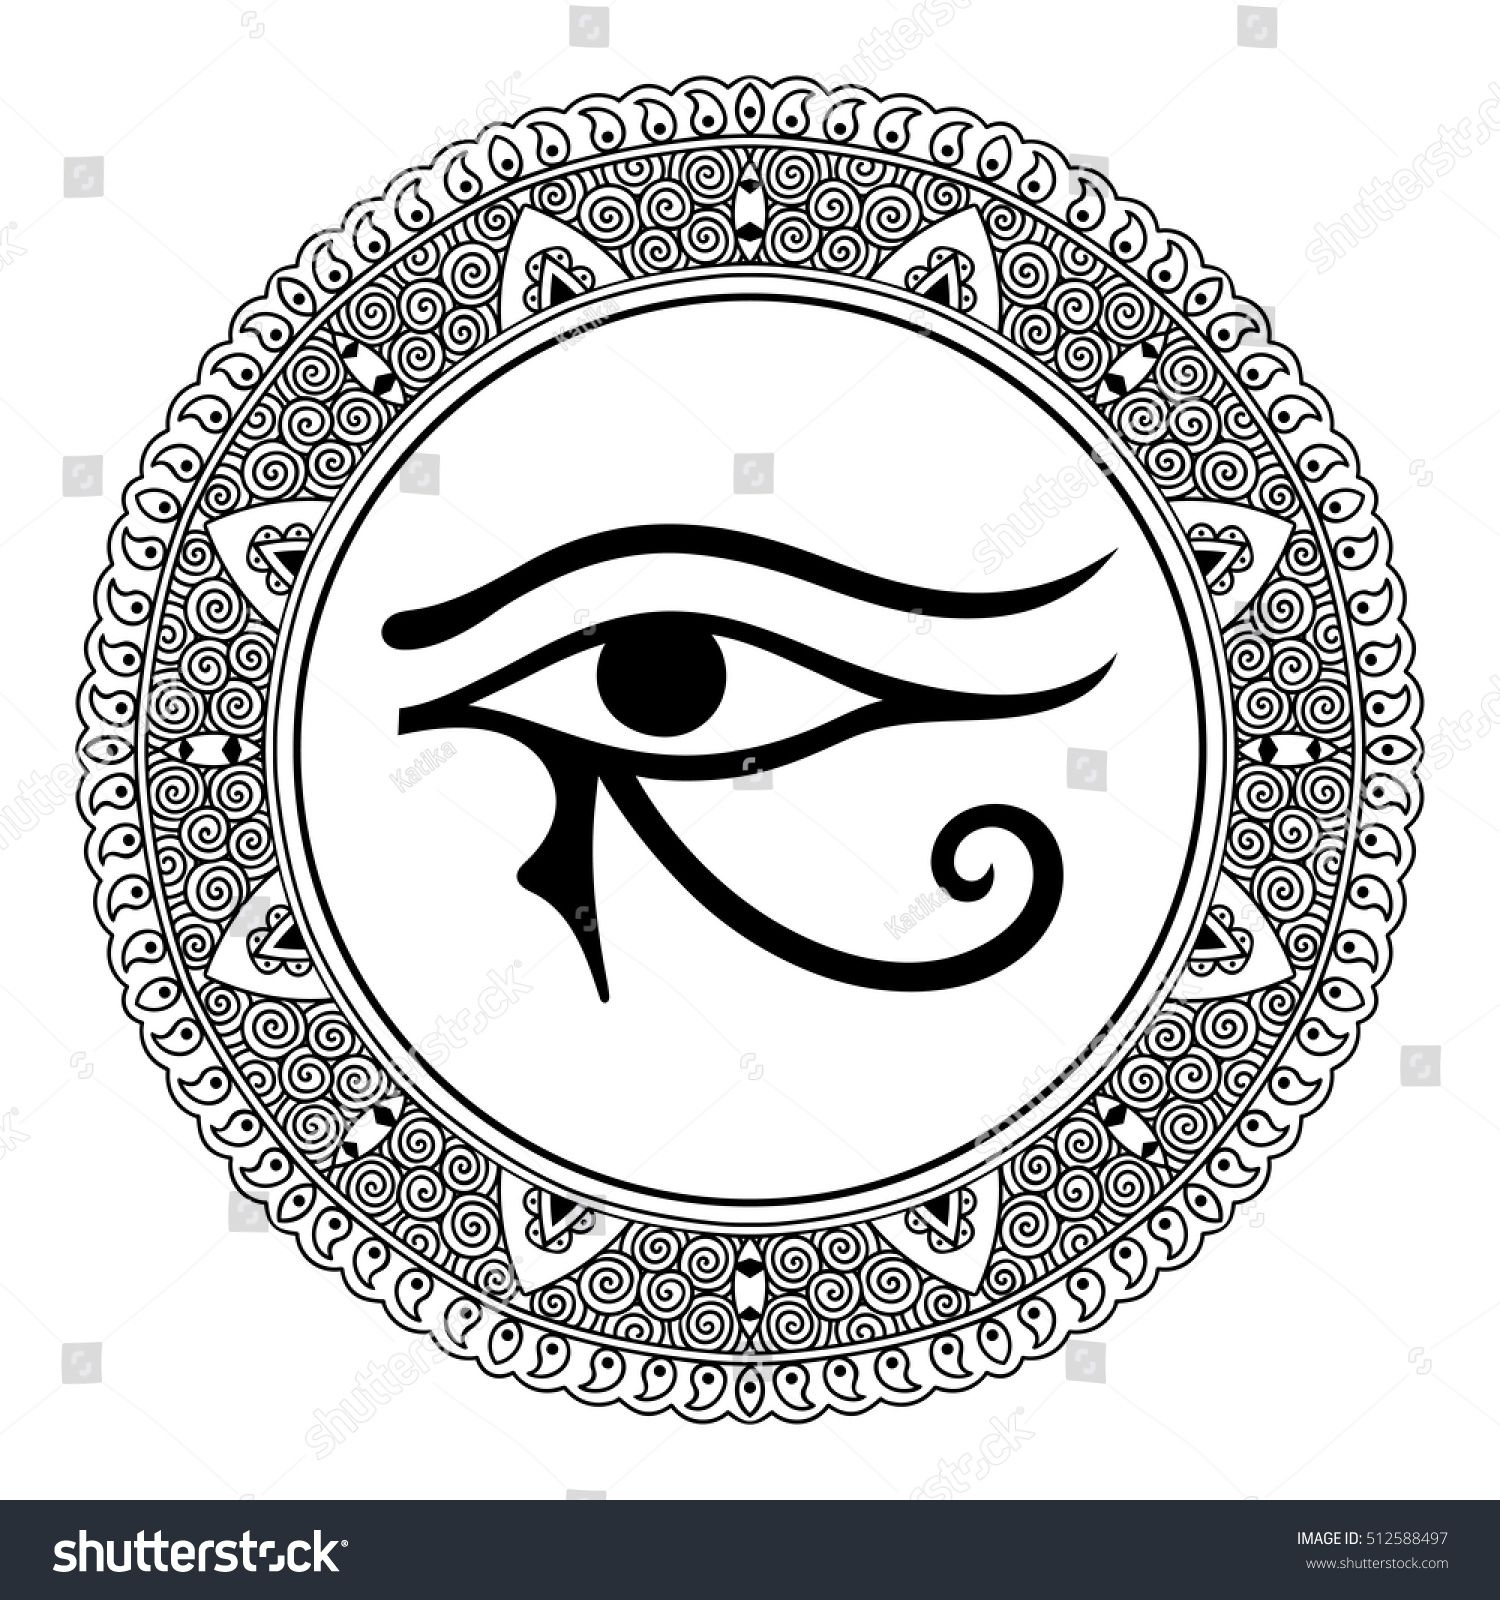 Circular pattern in the form of mandala the ancient symbol eye of circular pattern in the form of mandala the ancient symbol eye of horus egyptian buycottarizona